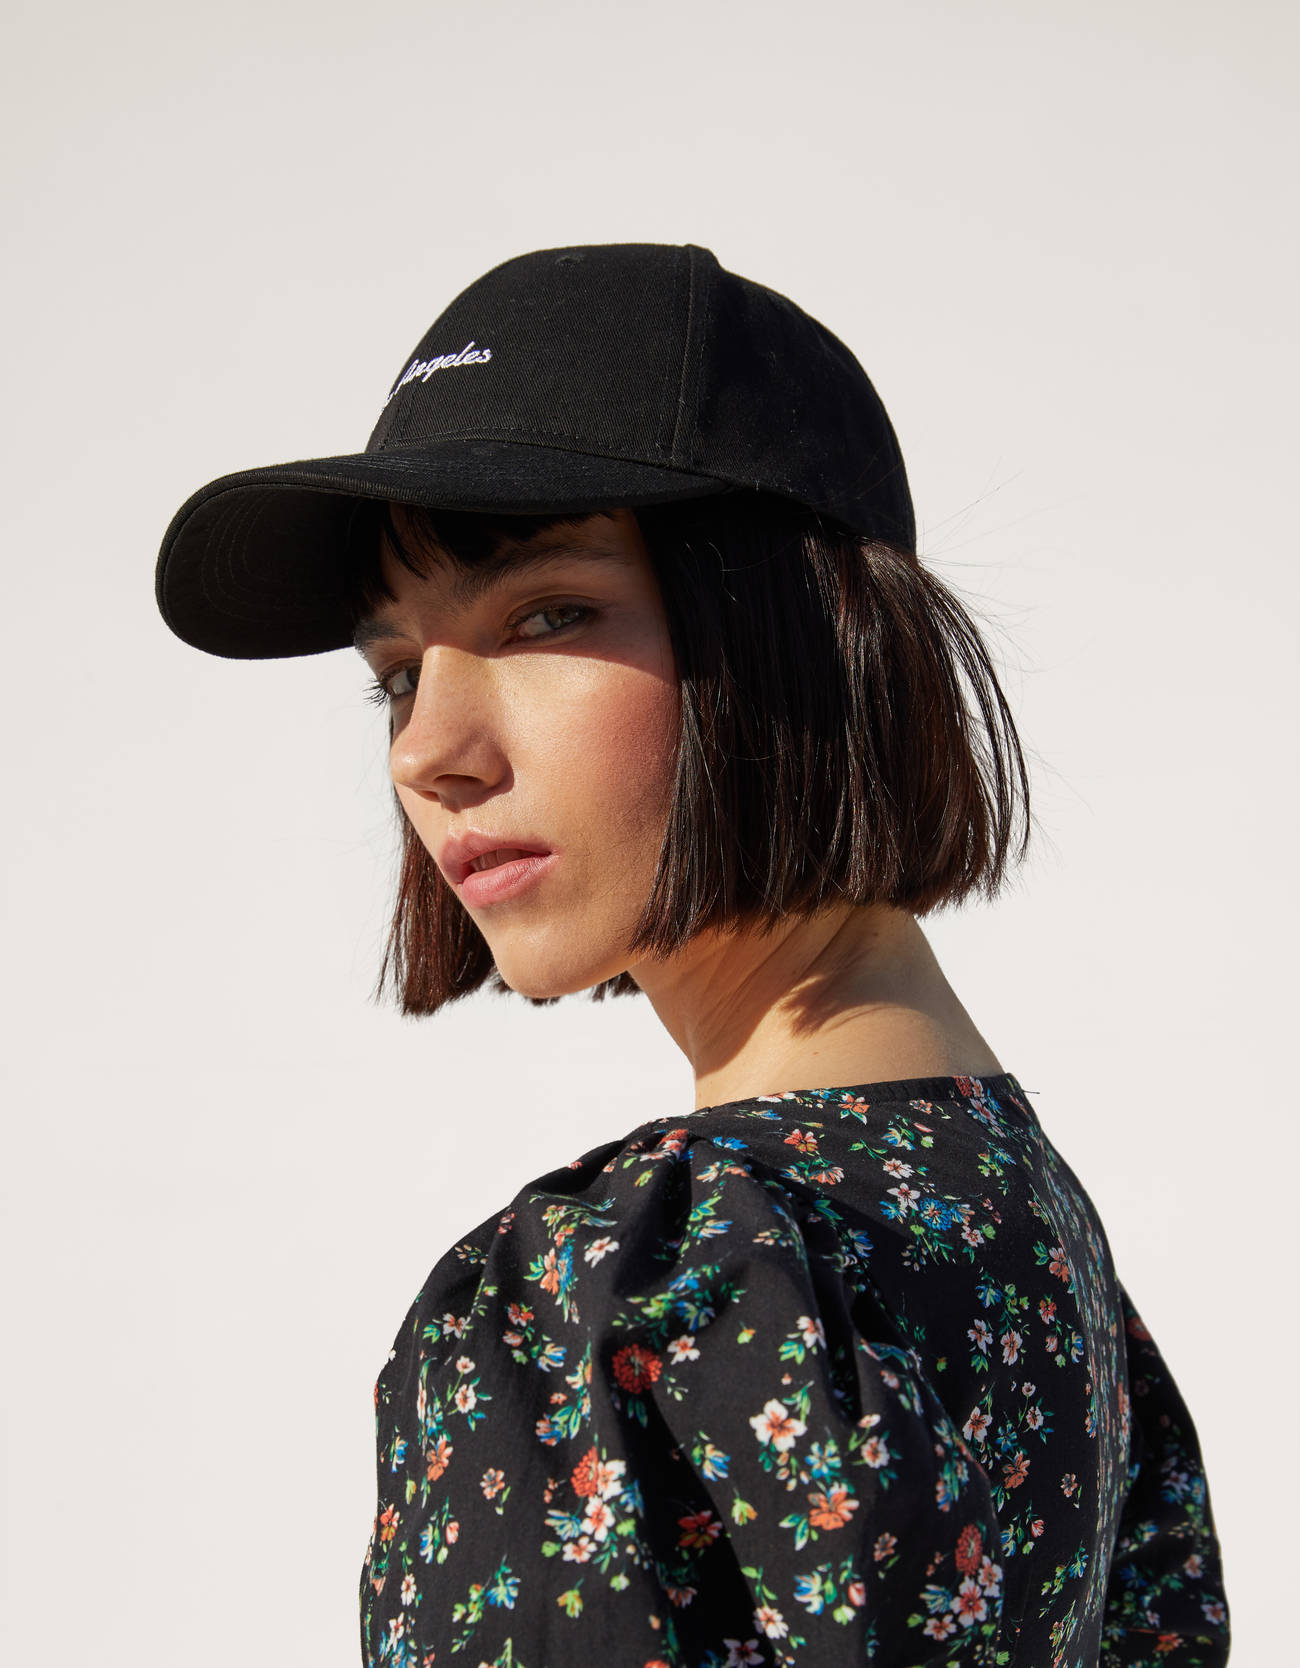 Black baseball cap with embroidered 'Los Angeles'